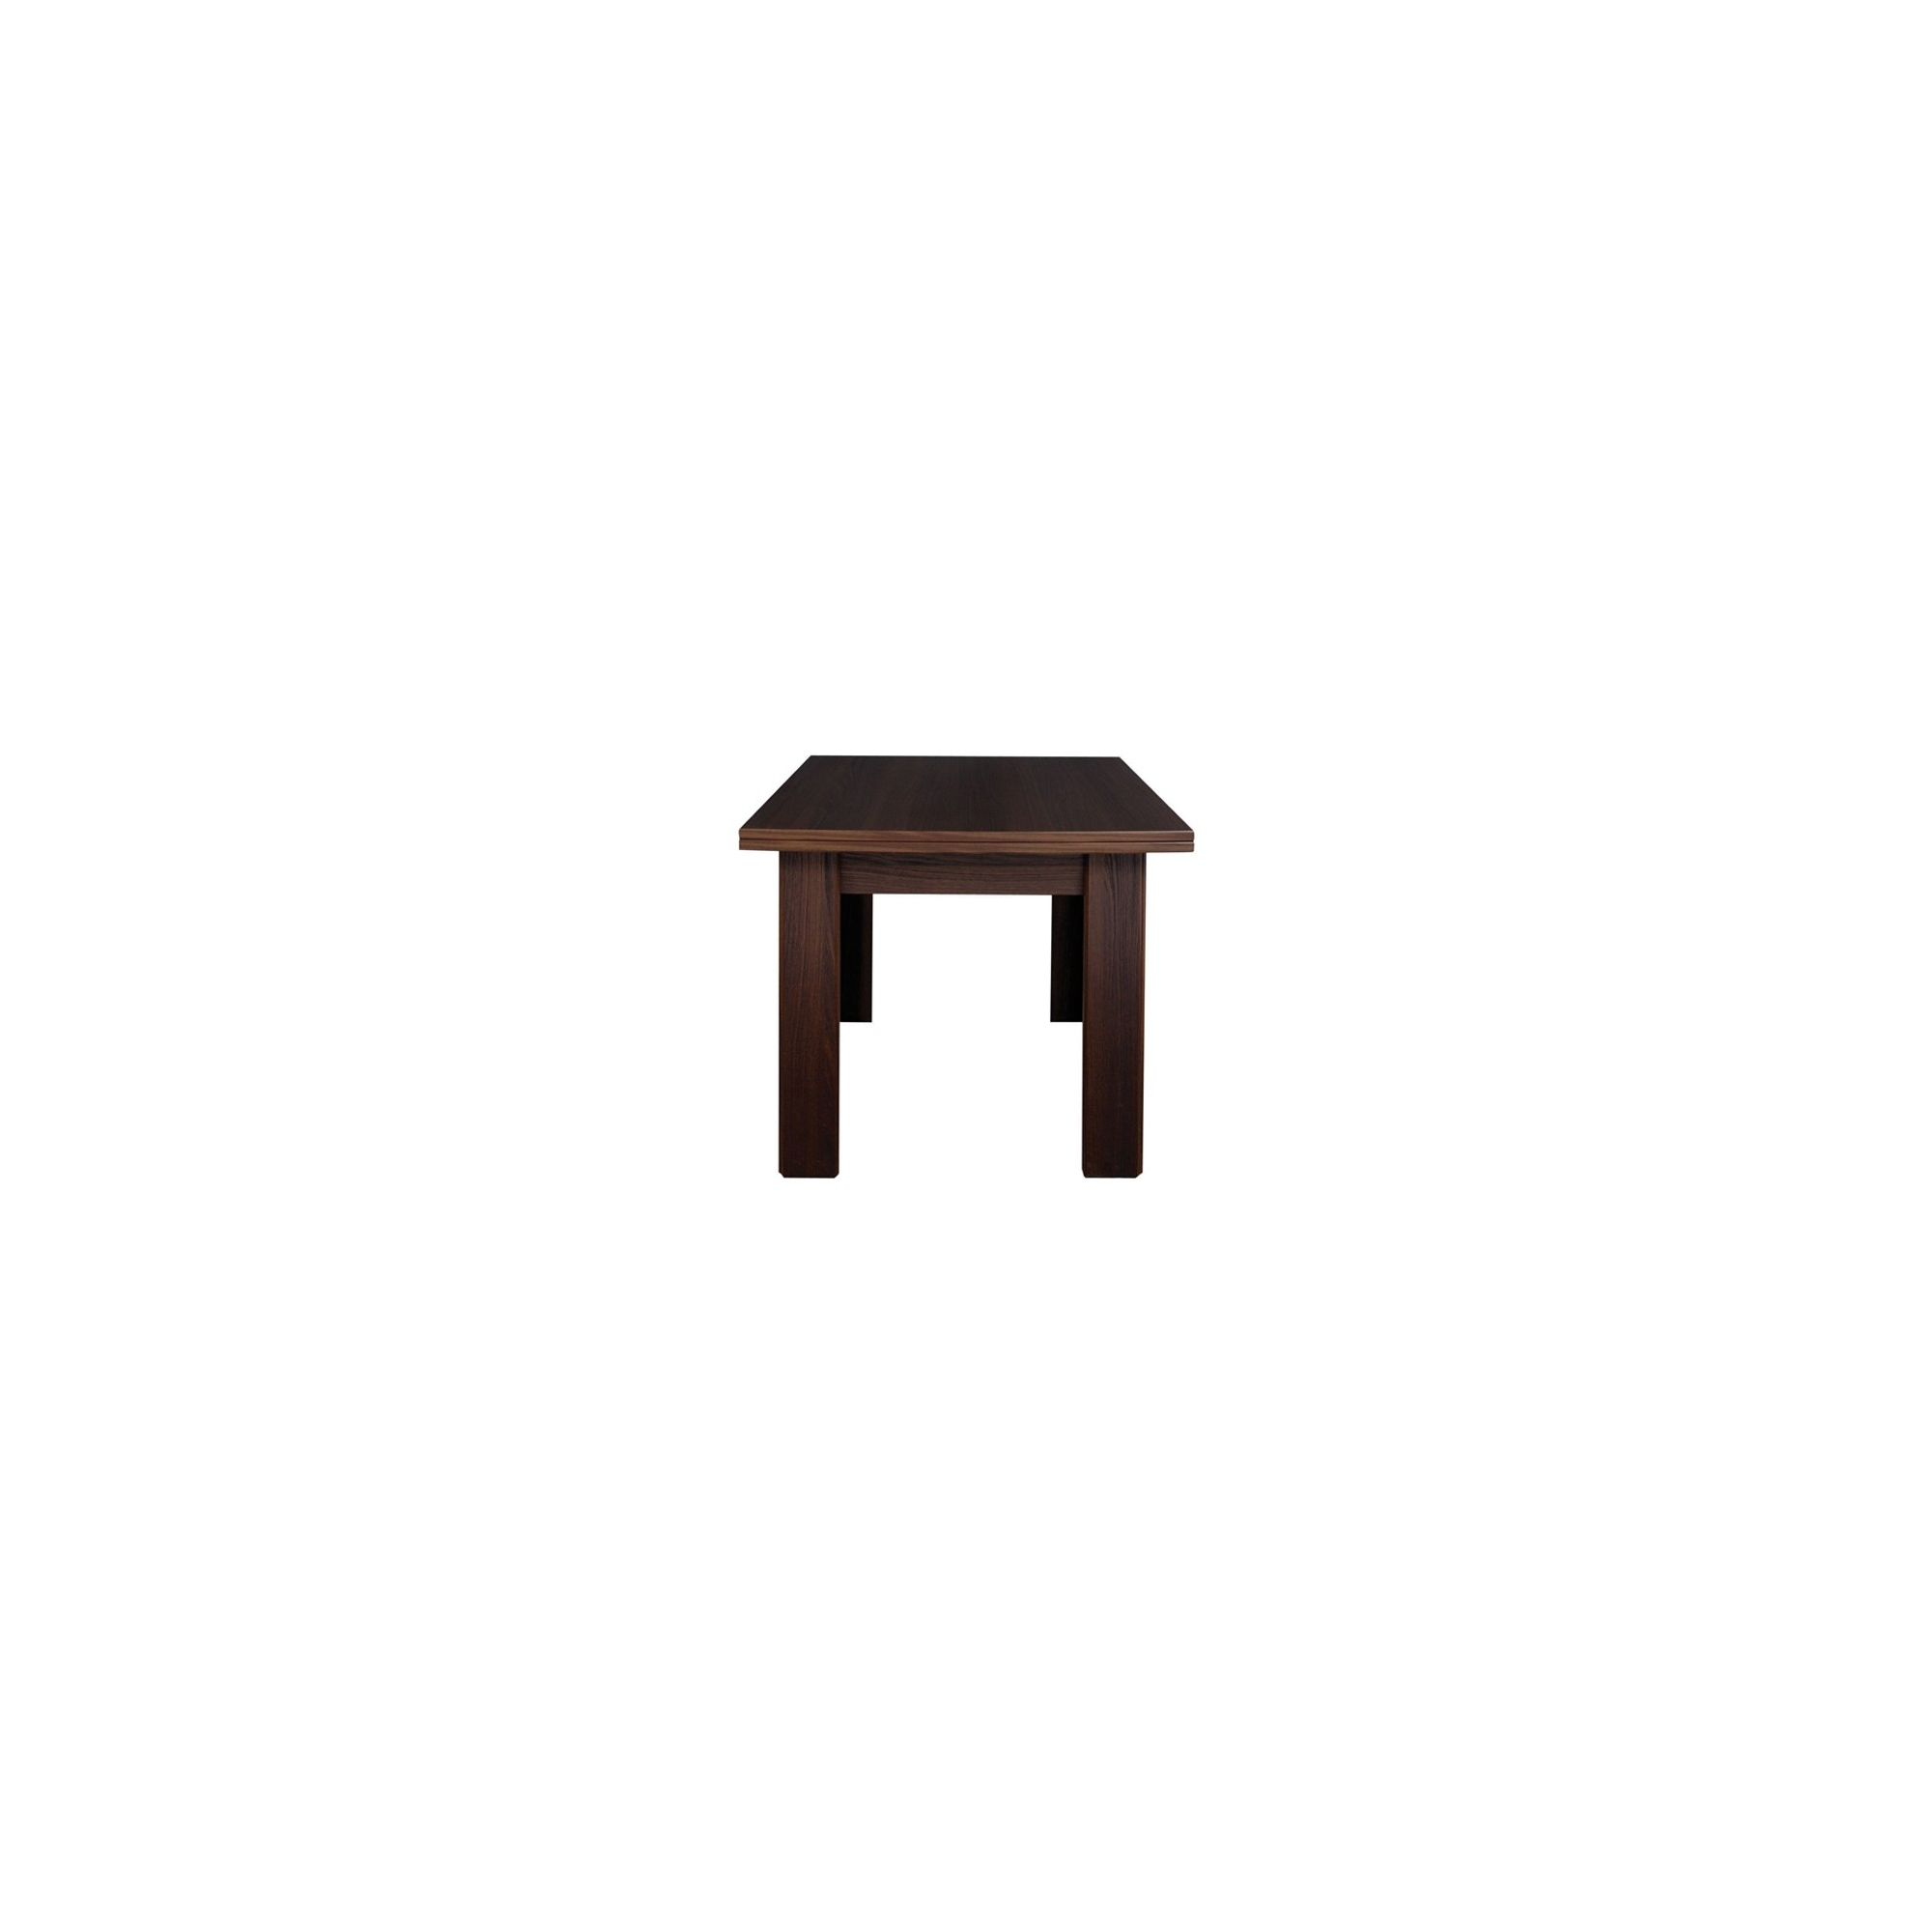 Other Caxton Royale Butterfly Extending Dining Table in Dark Oak - 92-184cm